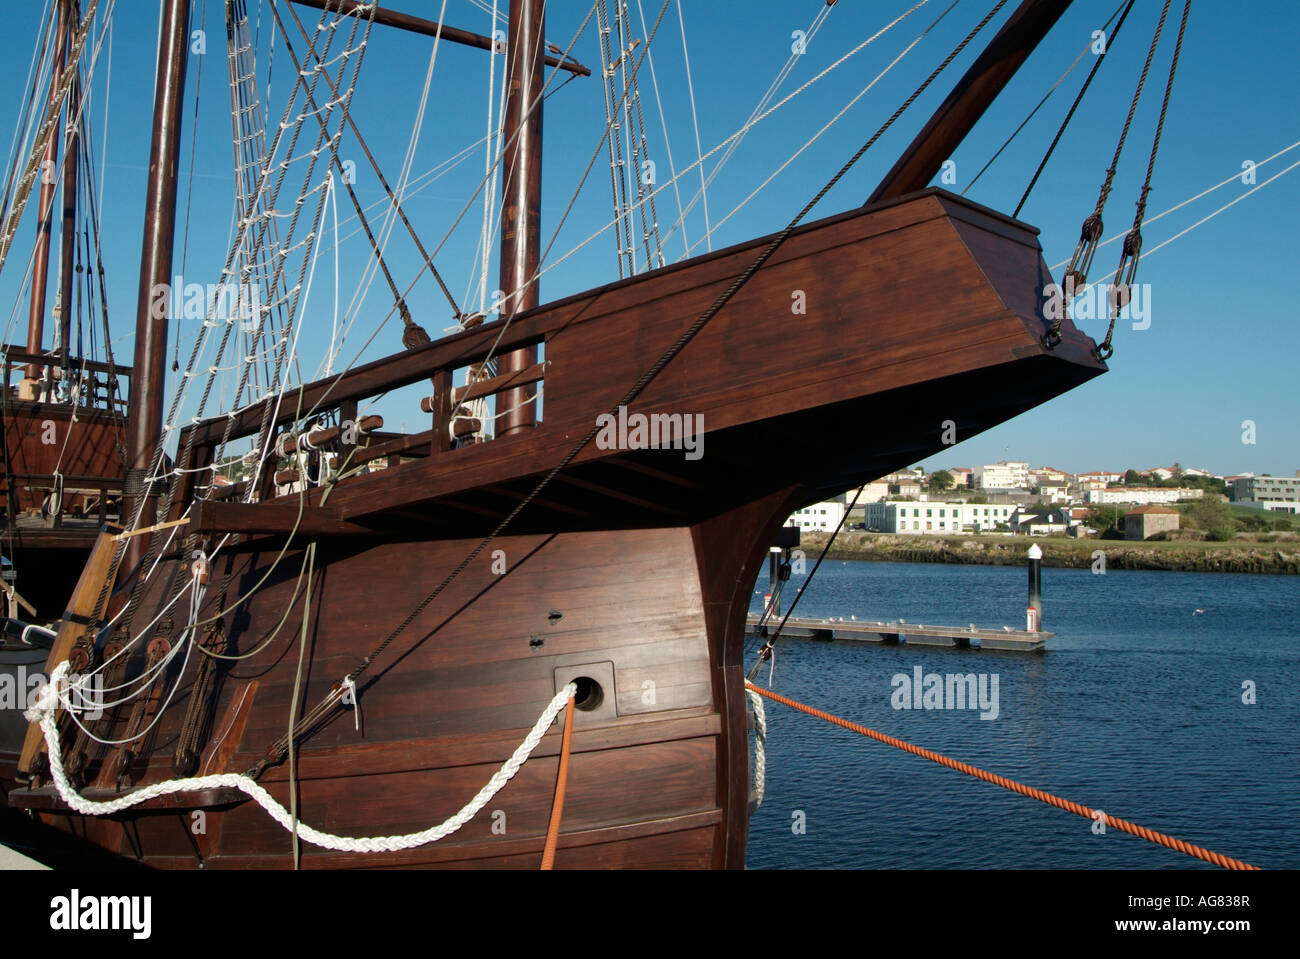 Replica of an old ship used in the discoveries - Stock Image